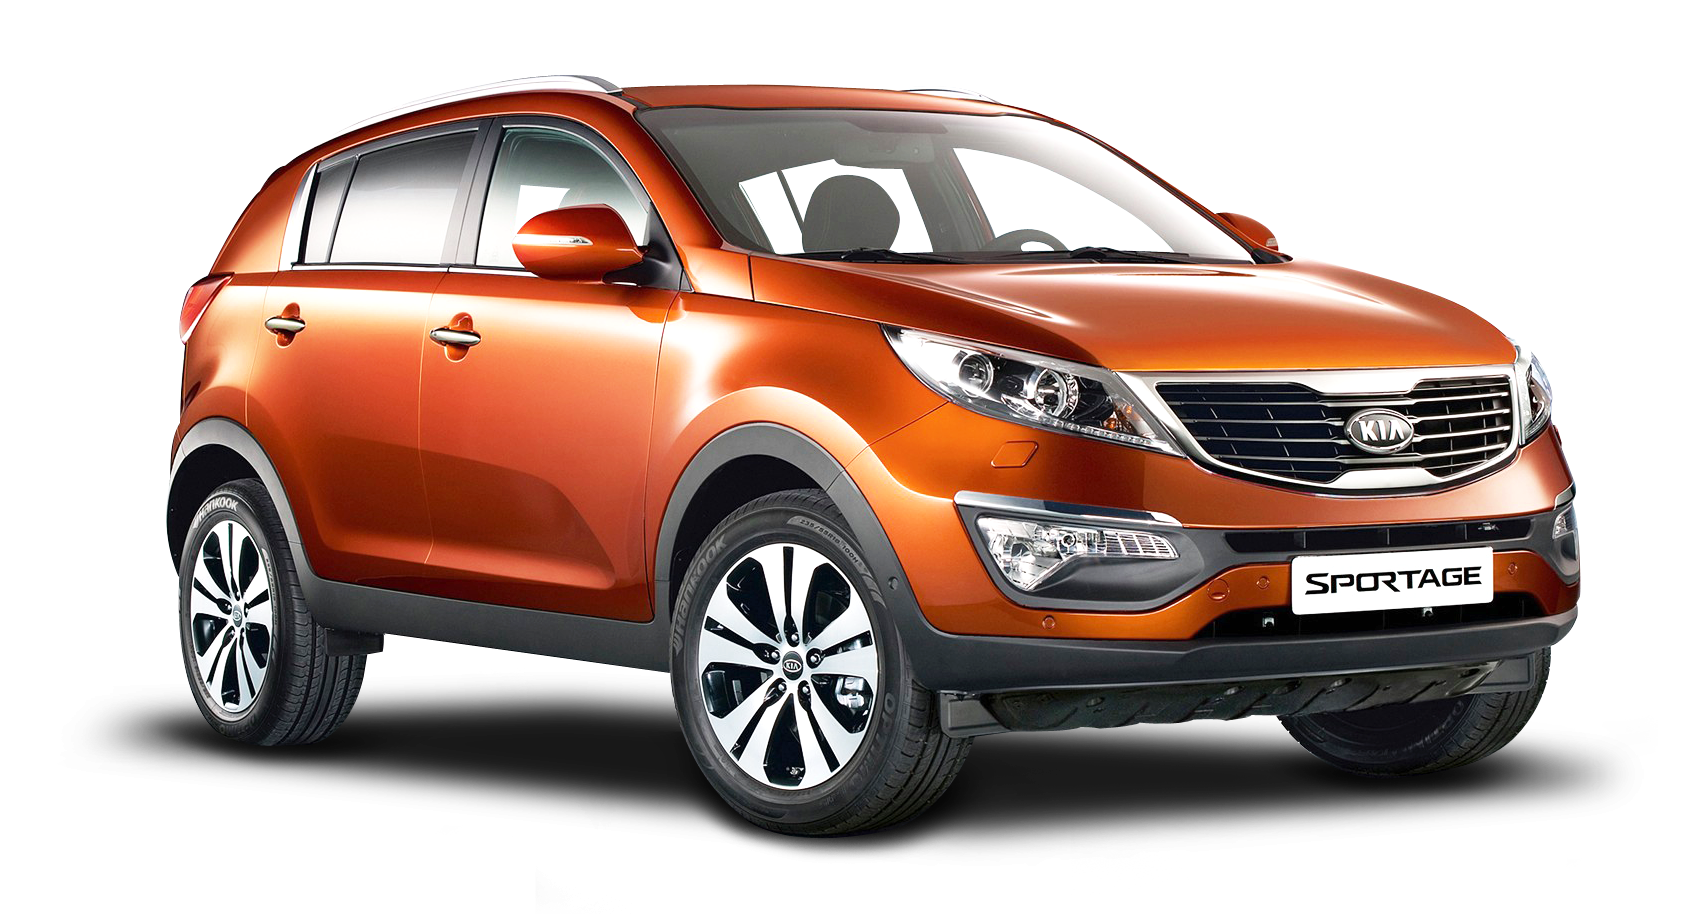 Pin By Charudeal On Future Dream Cars Kia Sportage Sportage Crossover Cars